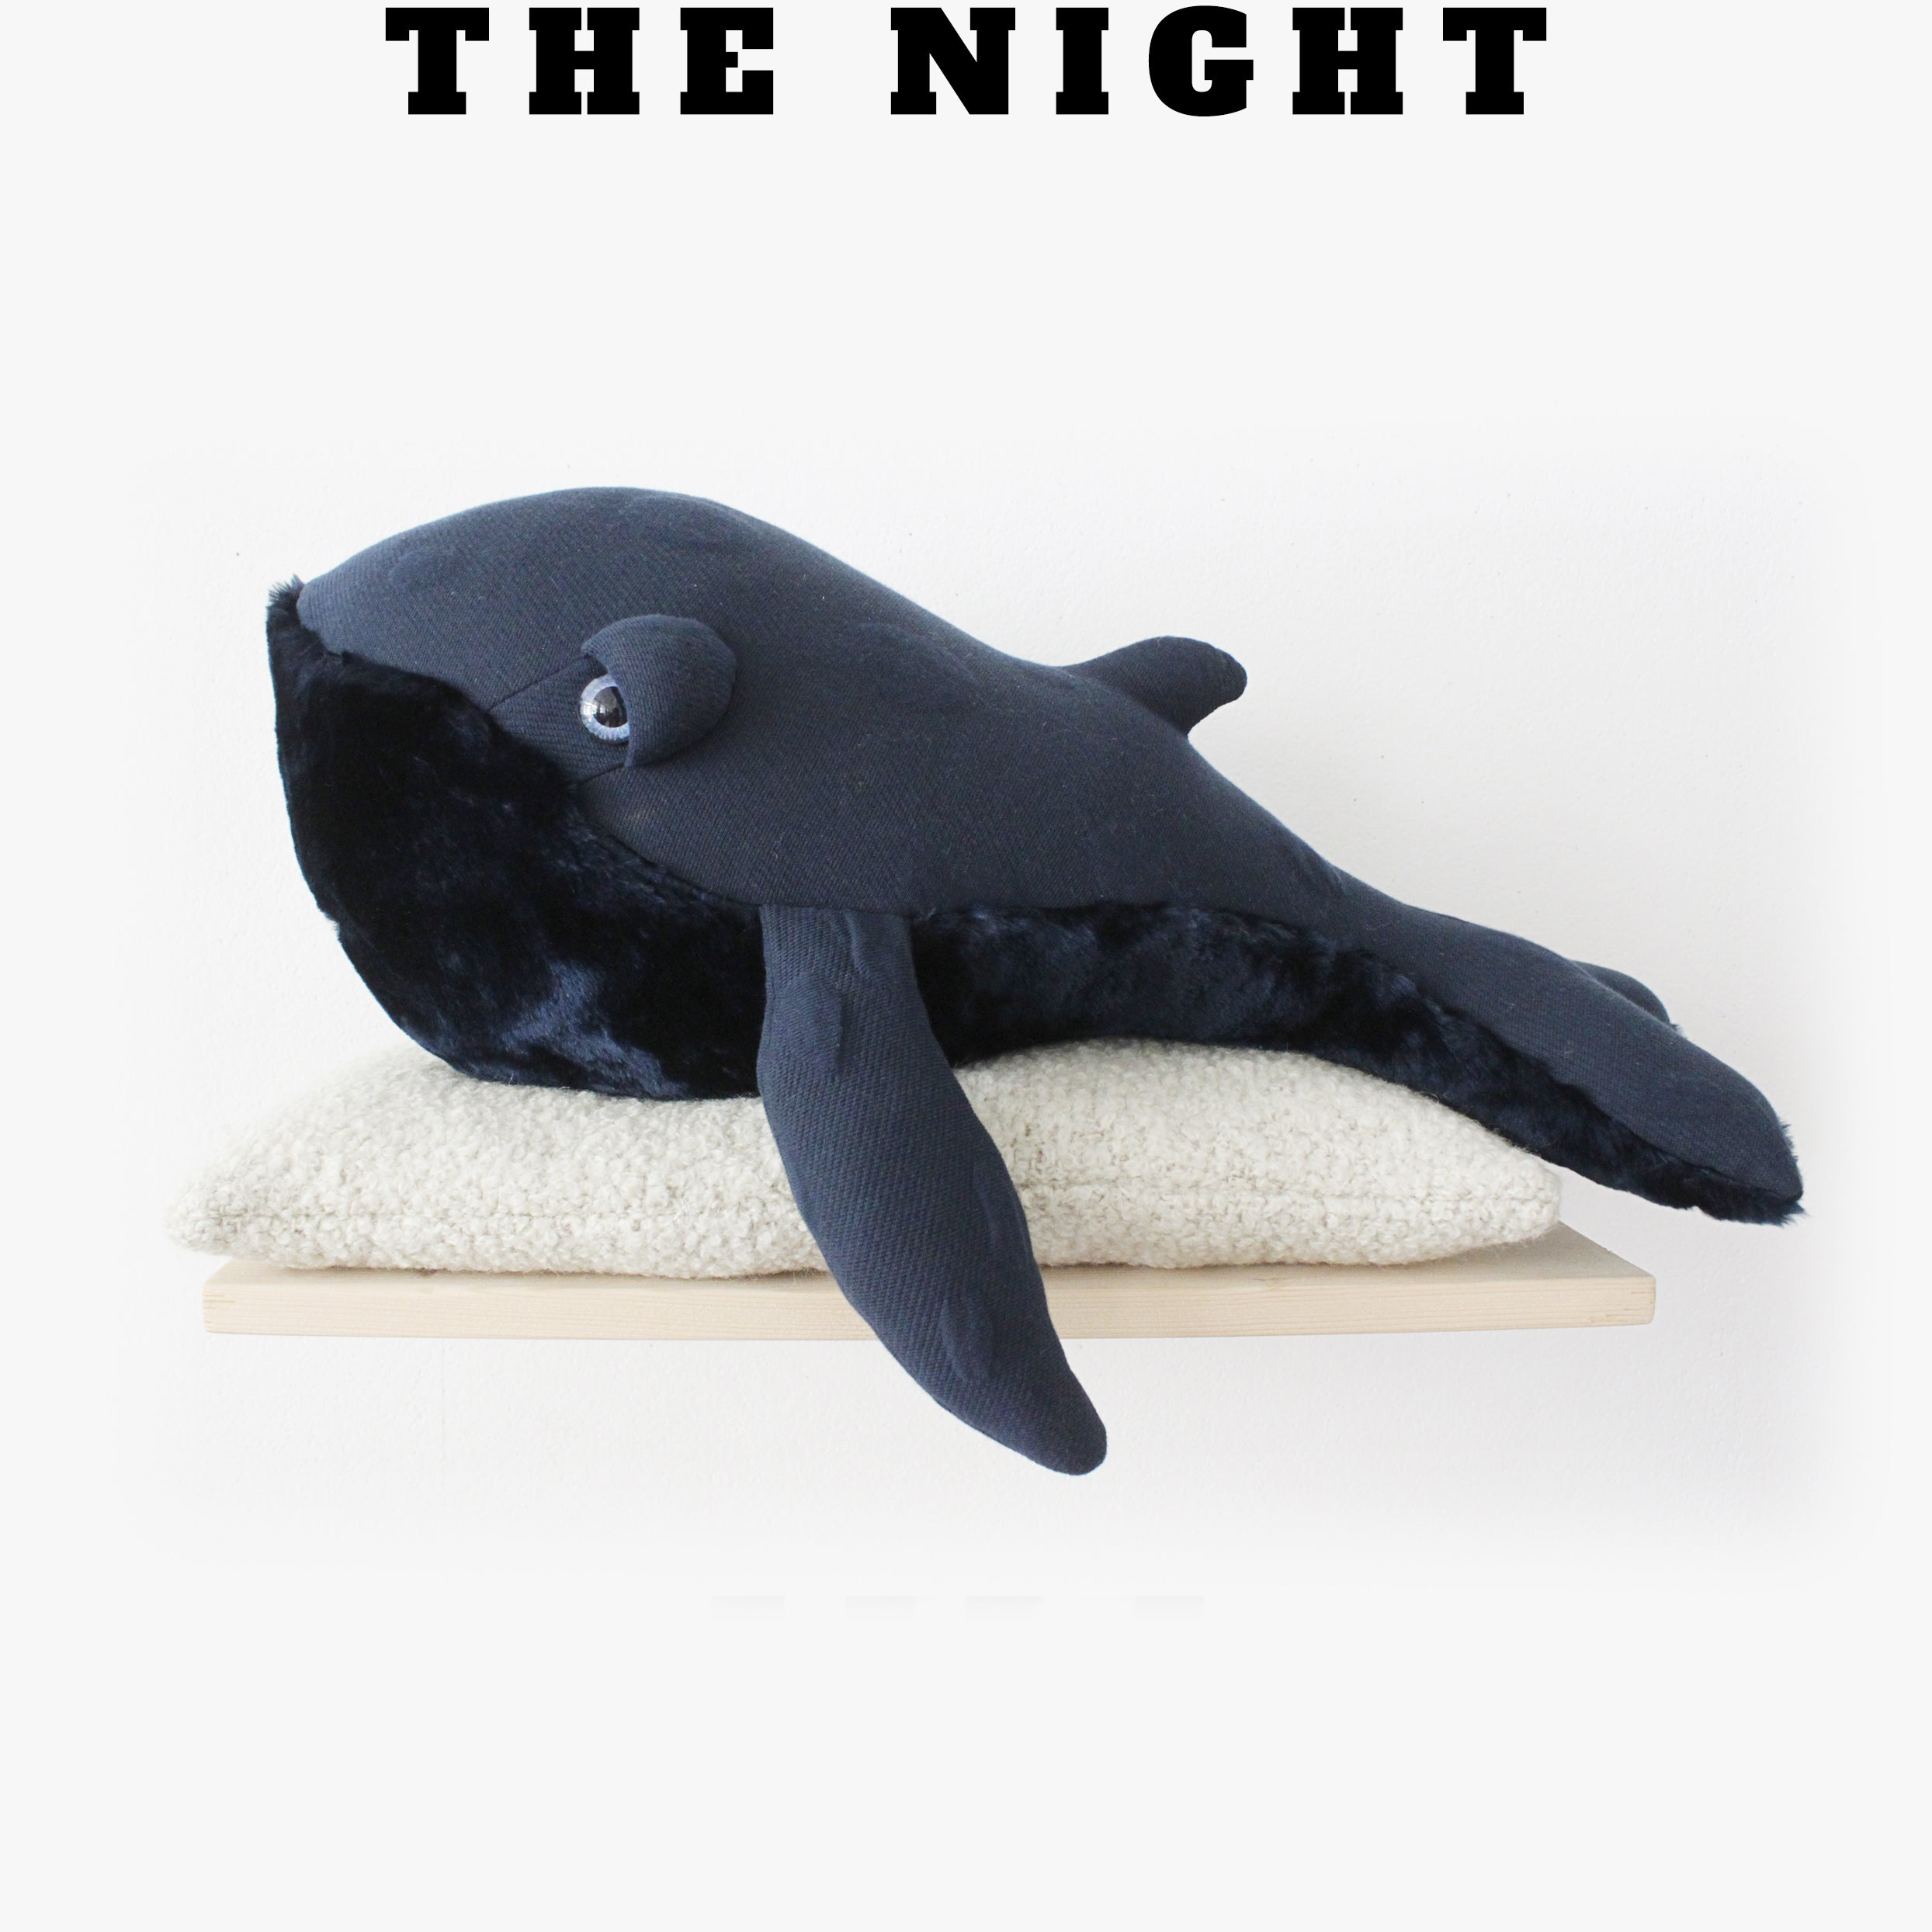 Night Whale - www.bigstuffed.com